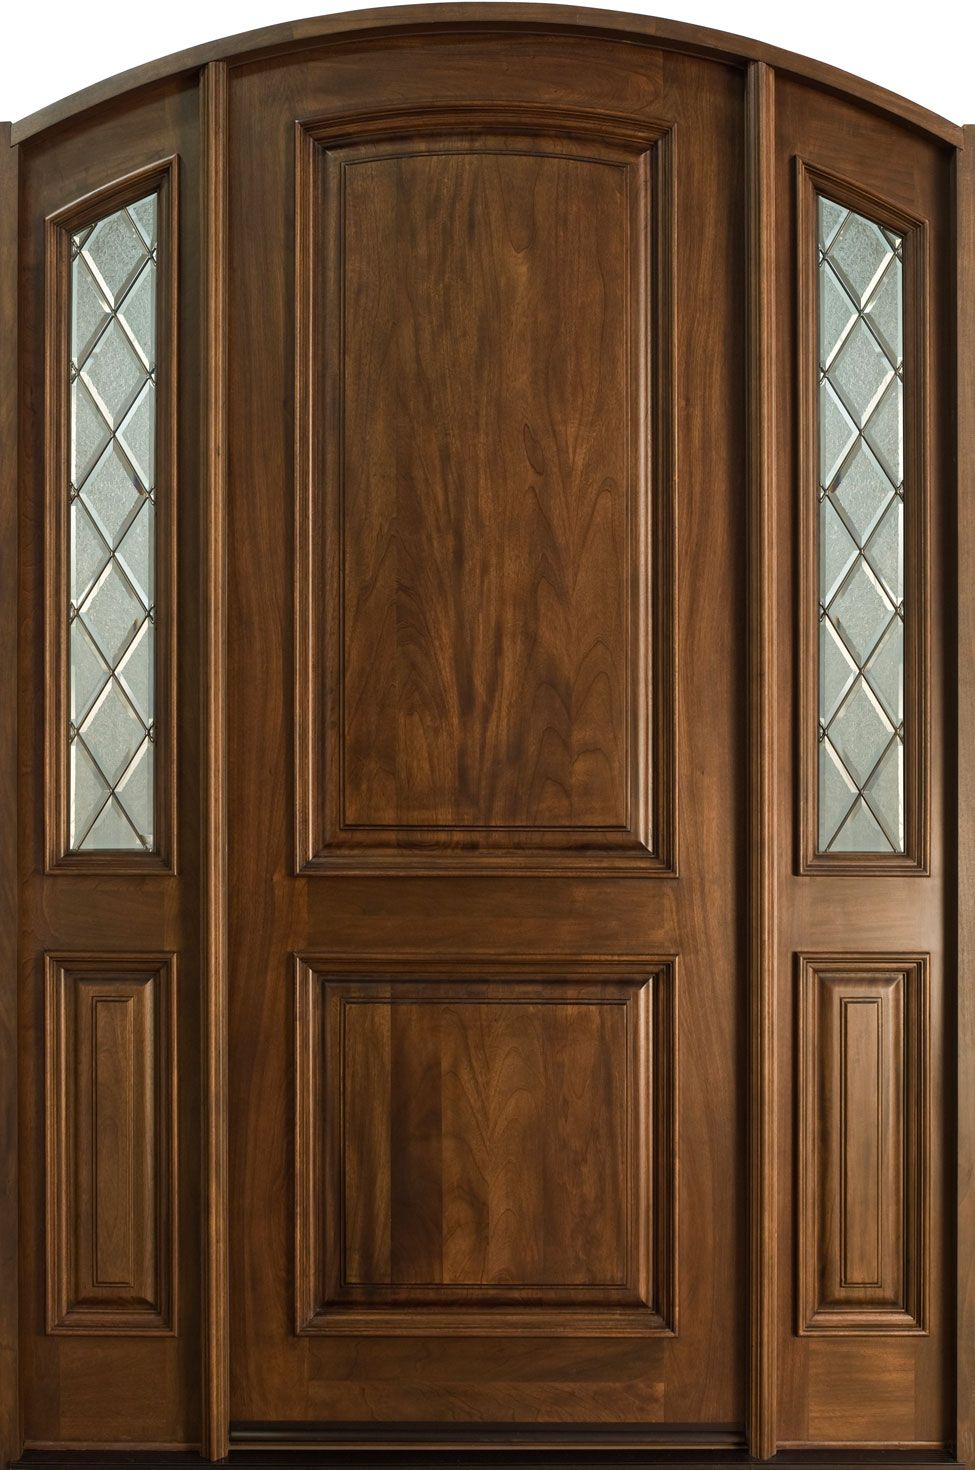 Entry door in stock single with 2 sidelites solid wood for Wooden single door design for home